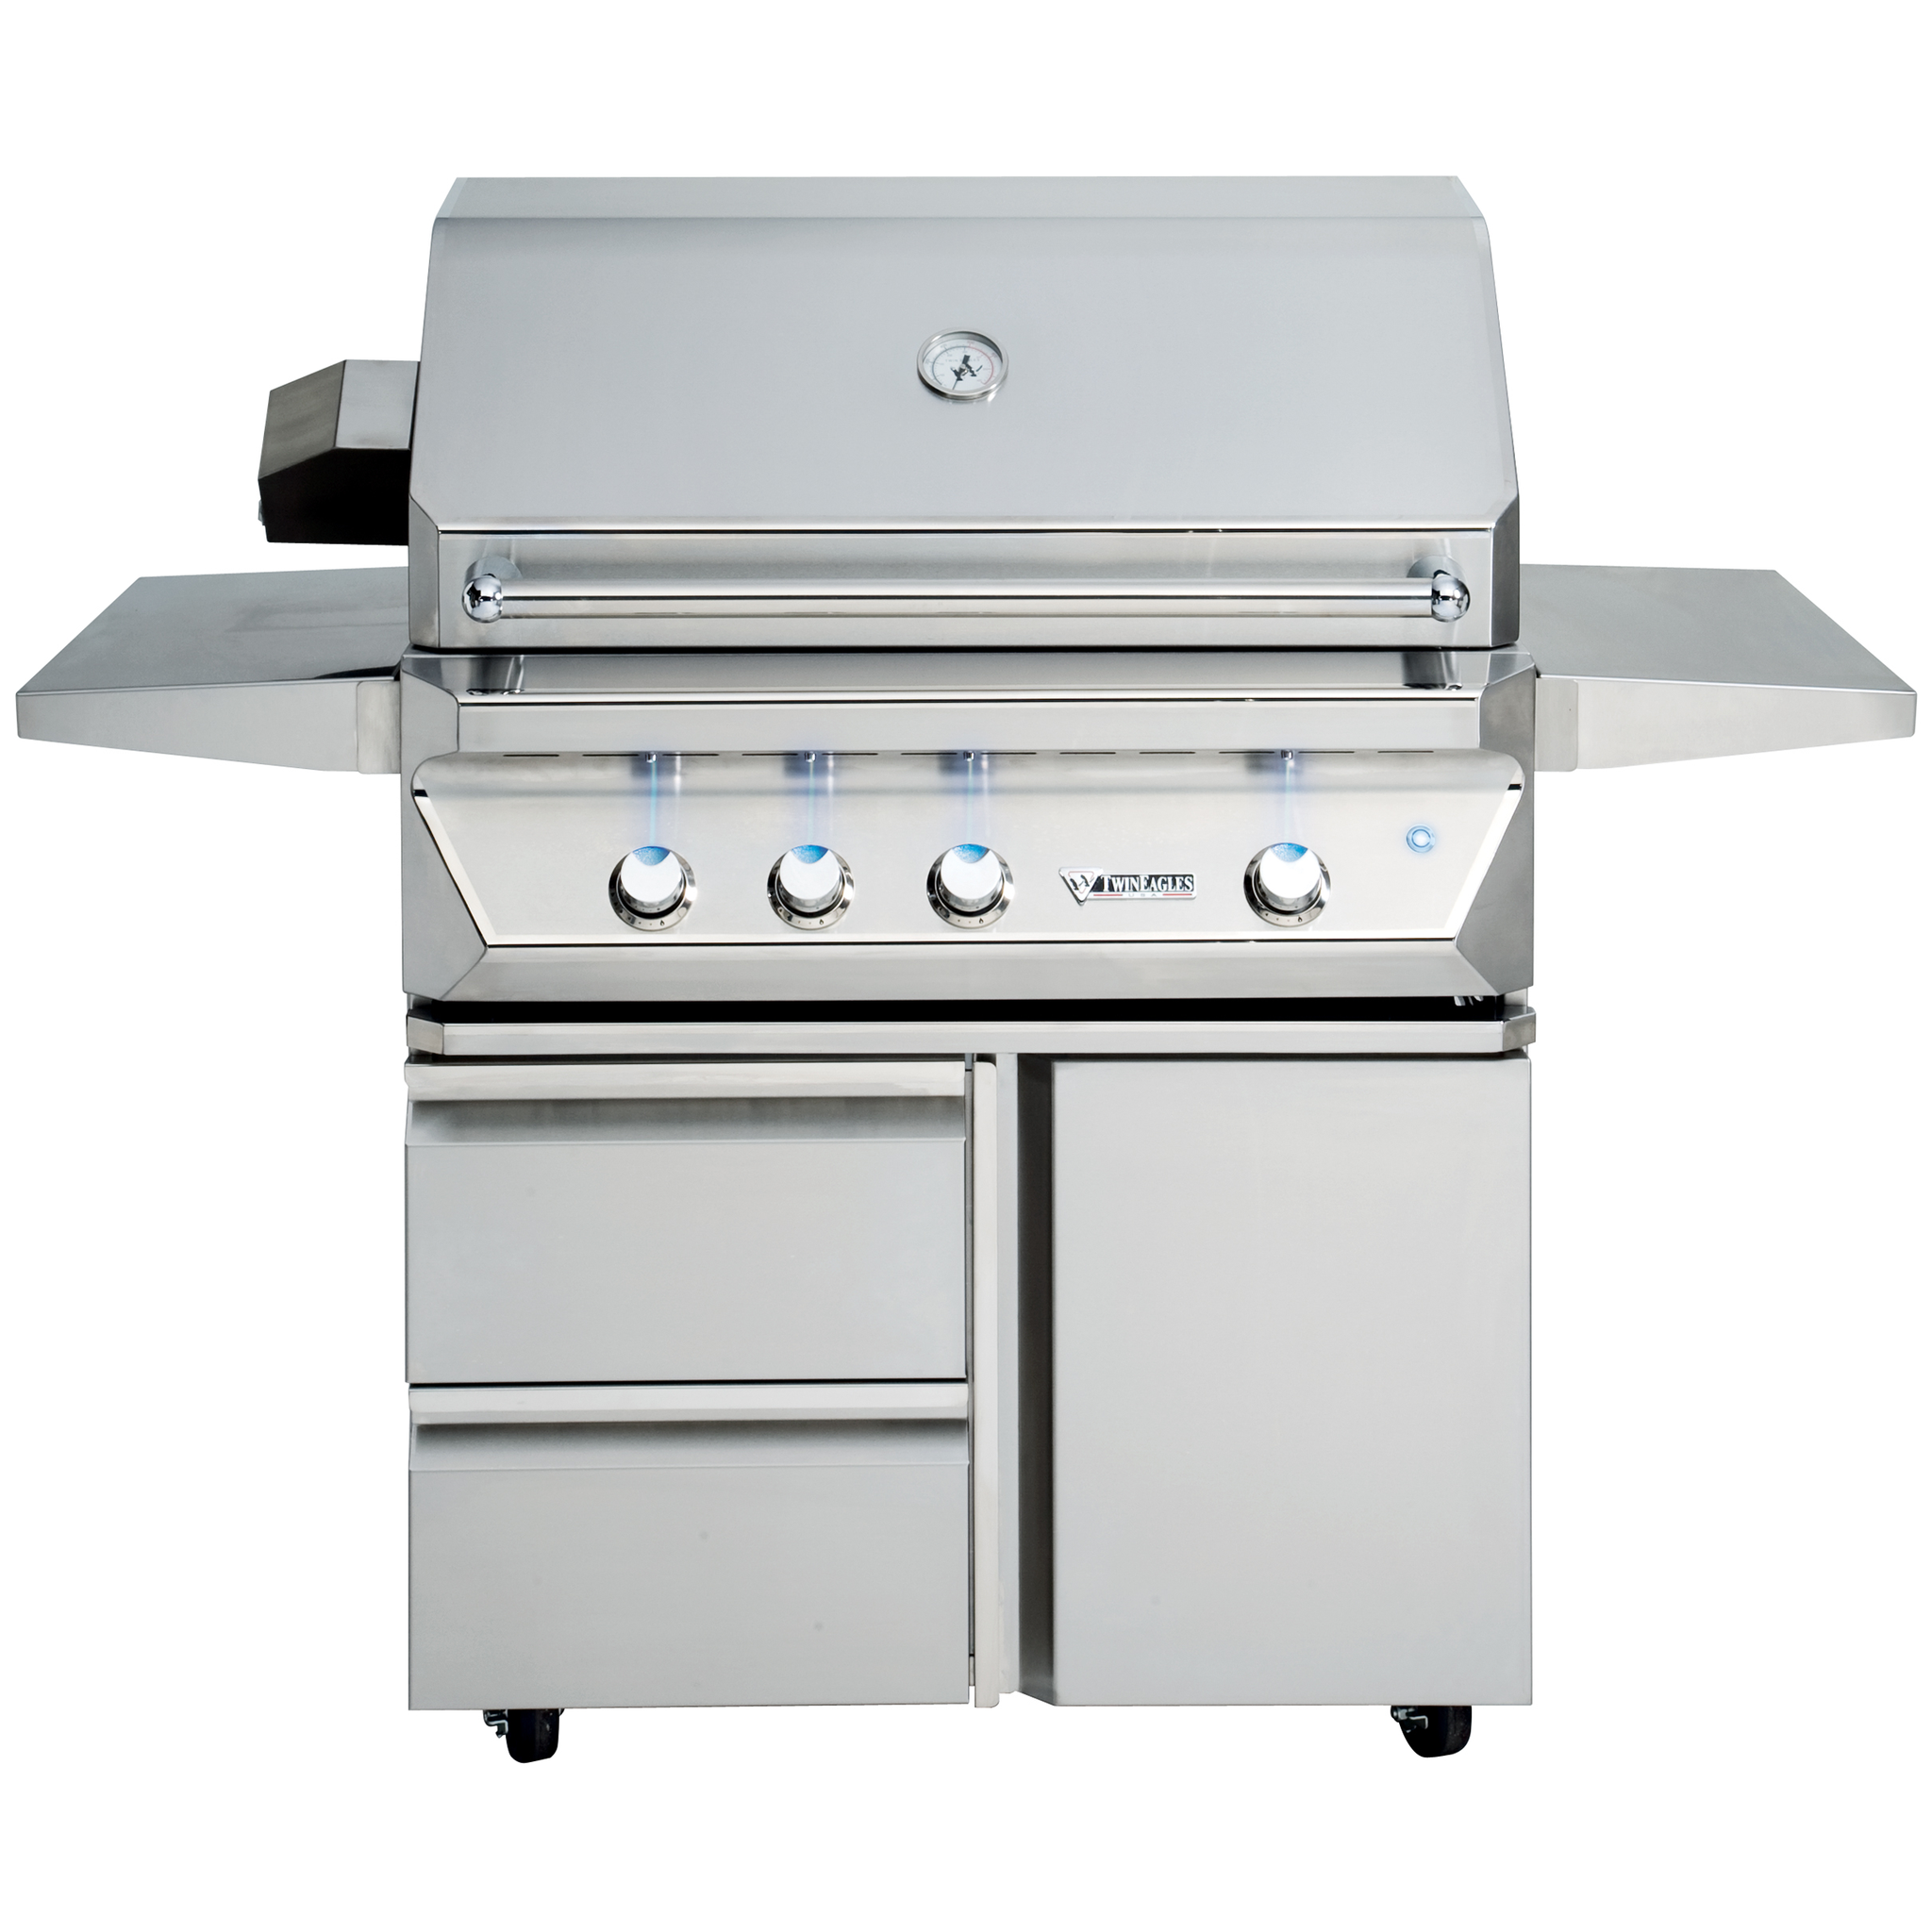 "36"" Twin Eagles Freestanding Gas Grill w/ Infrared Rotisserie on Cart w/ Single Door Plus Storage Drawers, Liquid Propane"